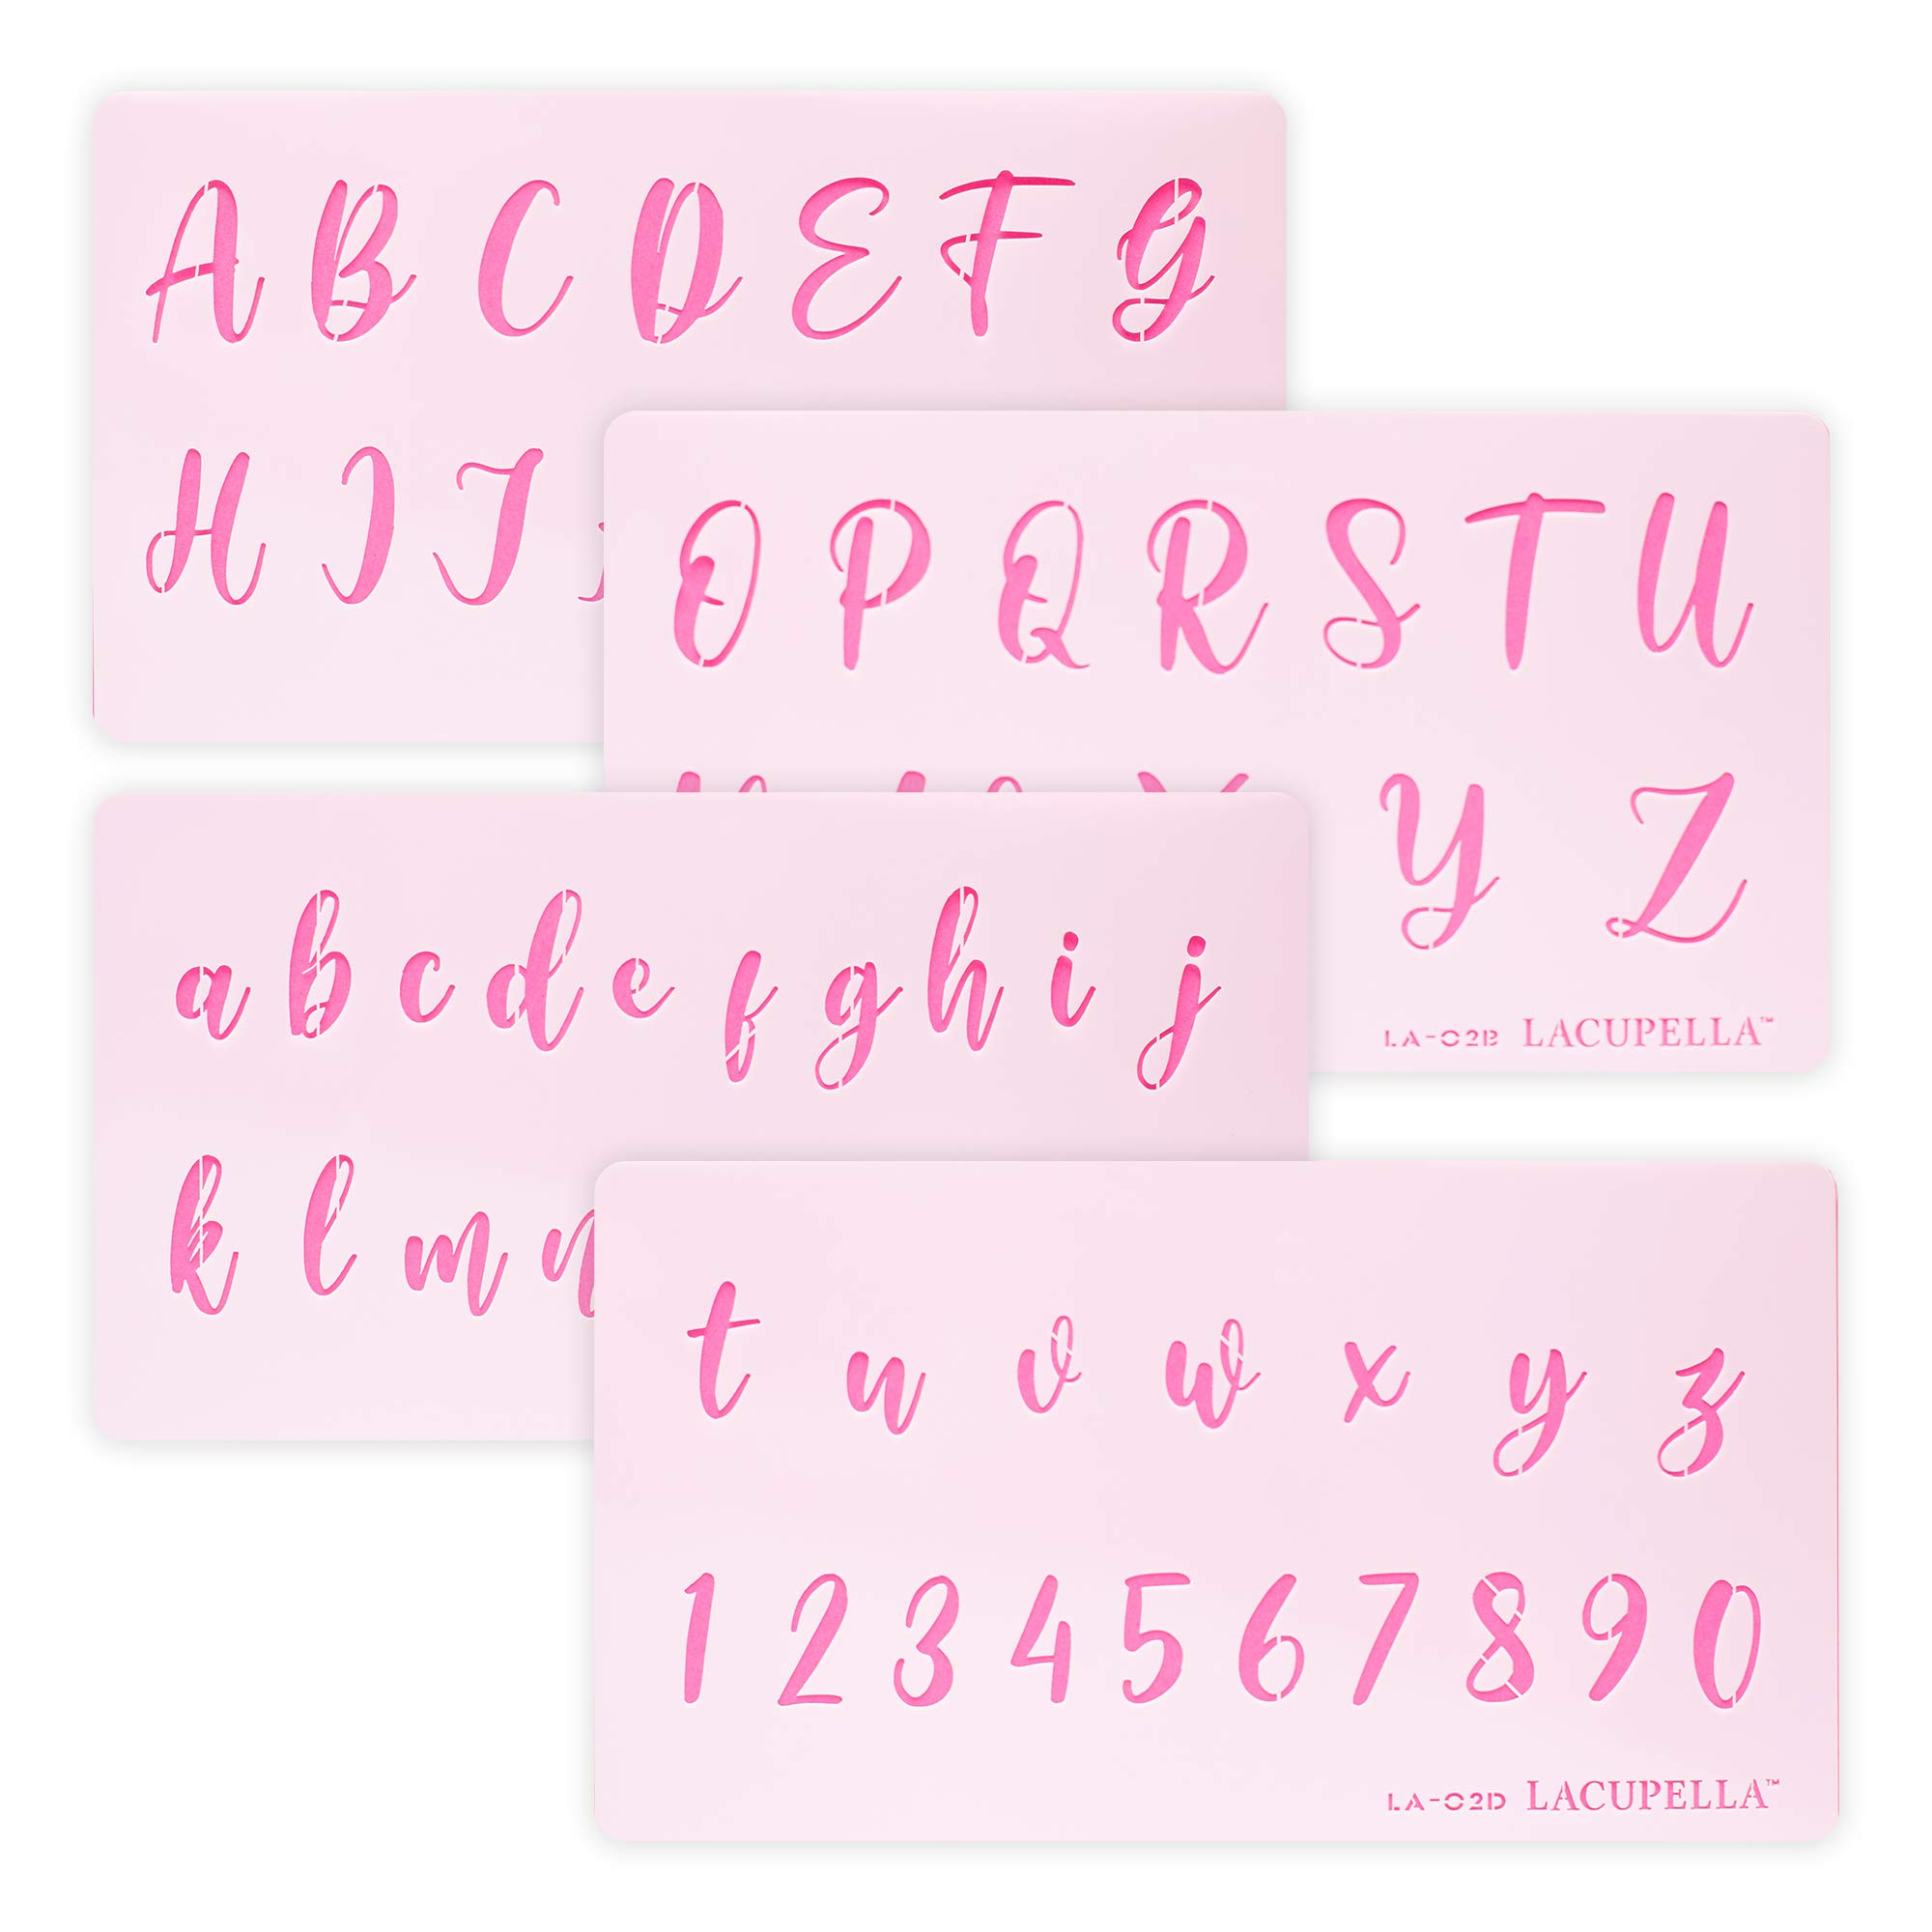 Calligraphy Alphabet Letter Number Cake Acrylic Stencil 1.5 Inch Set of Four - for Cake Airbrush Art and Craft Painting